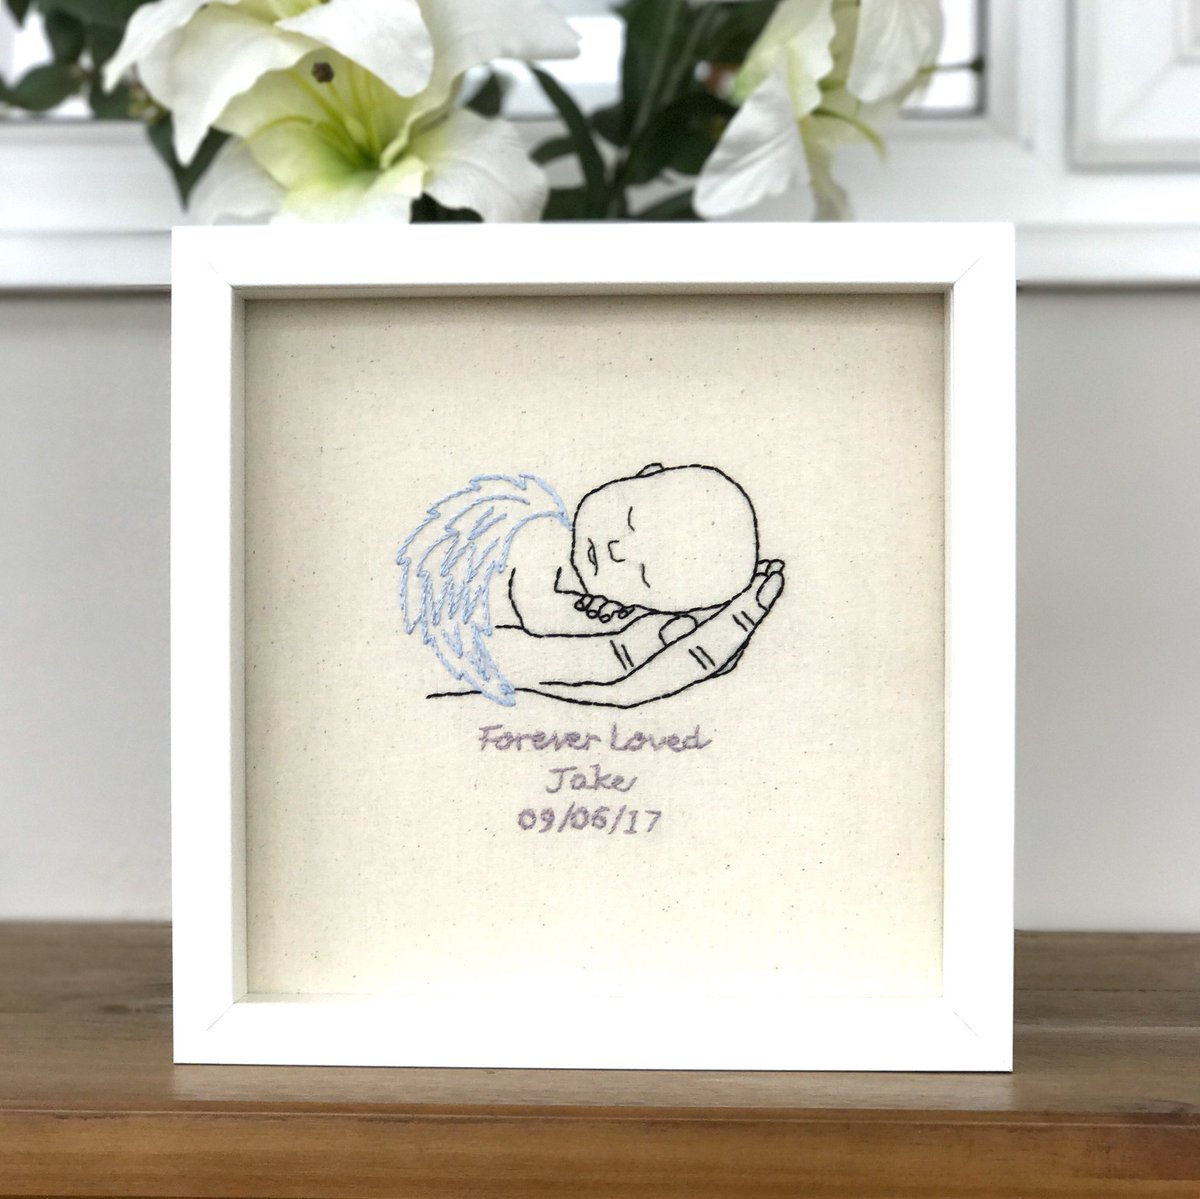 Just sew helen on twitter angel baby remembrance picture can just sew helen on twitter angel baby remembrance picture can be personalised with name date of birth httpsteojgsbhnm6 miscarriage stillbirth jeuxipadfo Choice Image